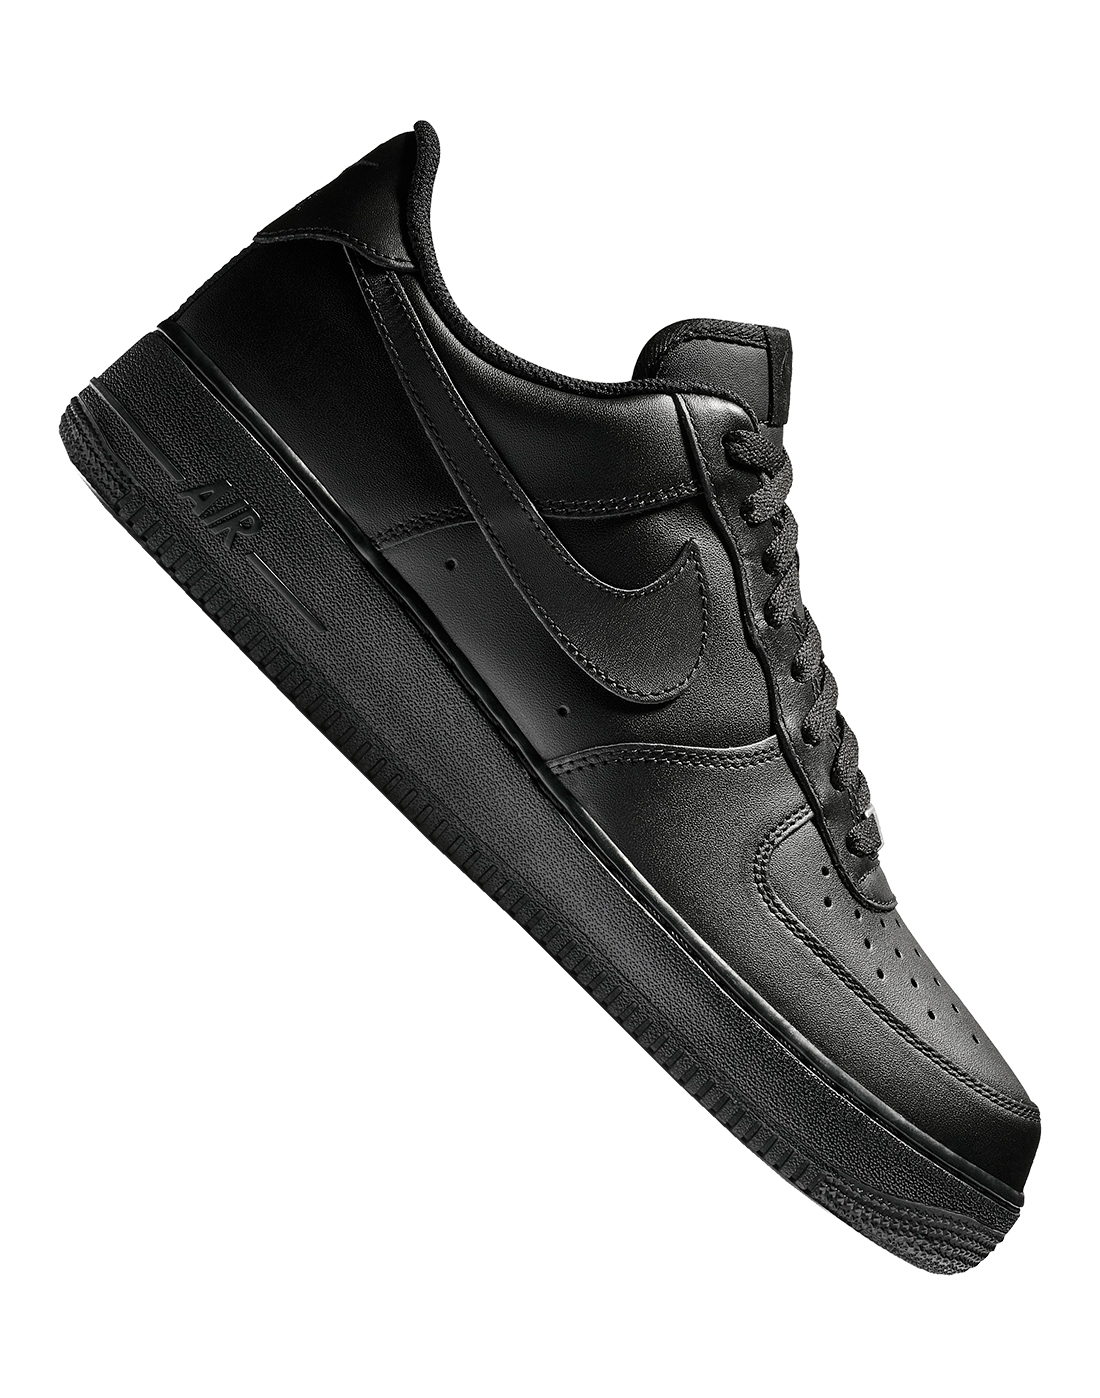 factory authentic d06cd 7a194 Mens Air Force 1 ...